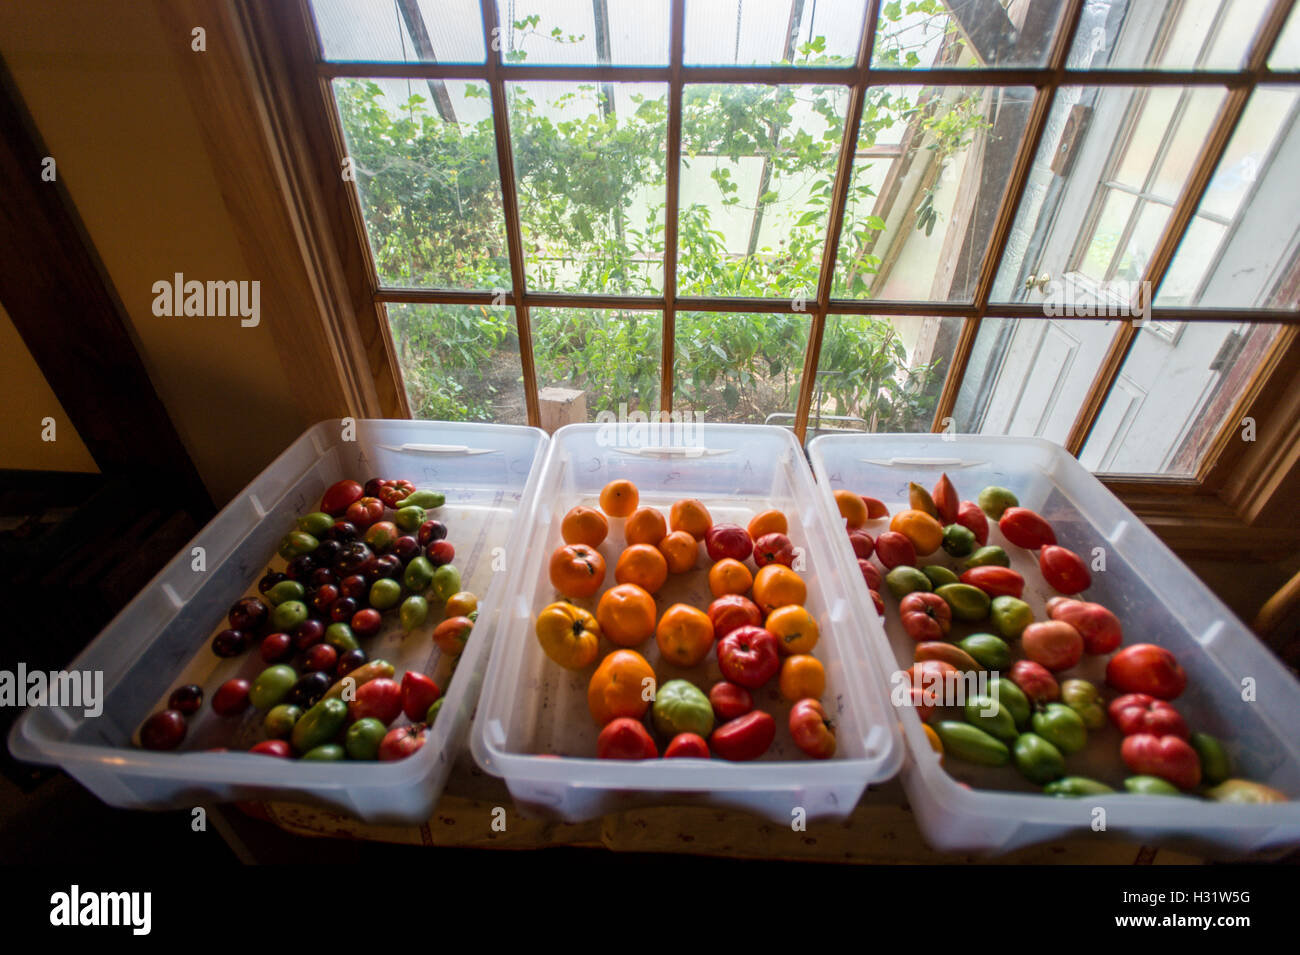 Fruit Bins For Sale Tubs Of Fresh Fruit Stock Photos And Tubs Of Fresh Fruit